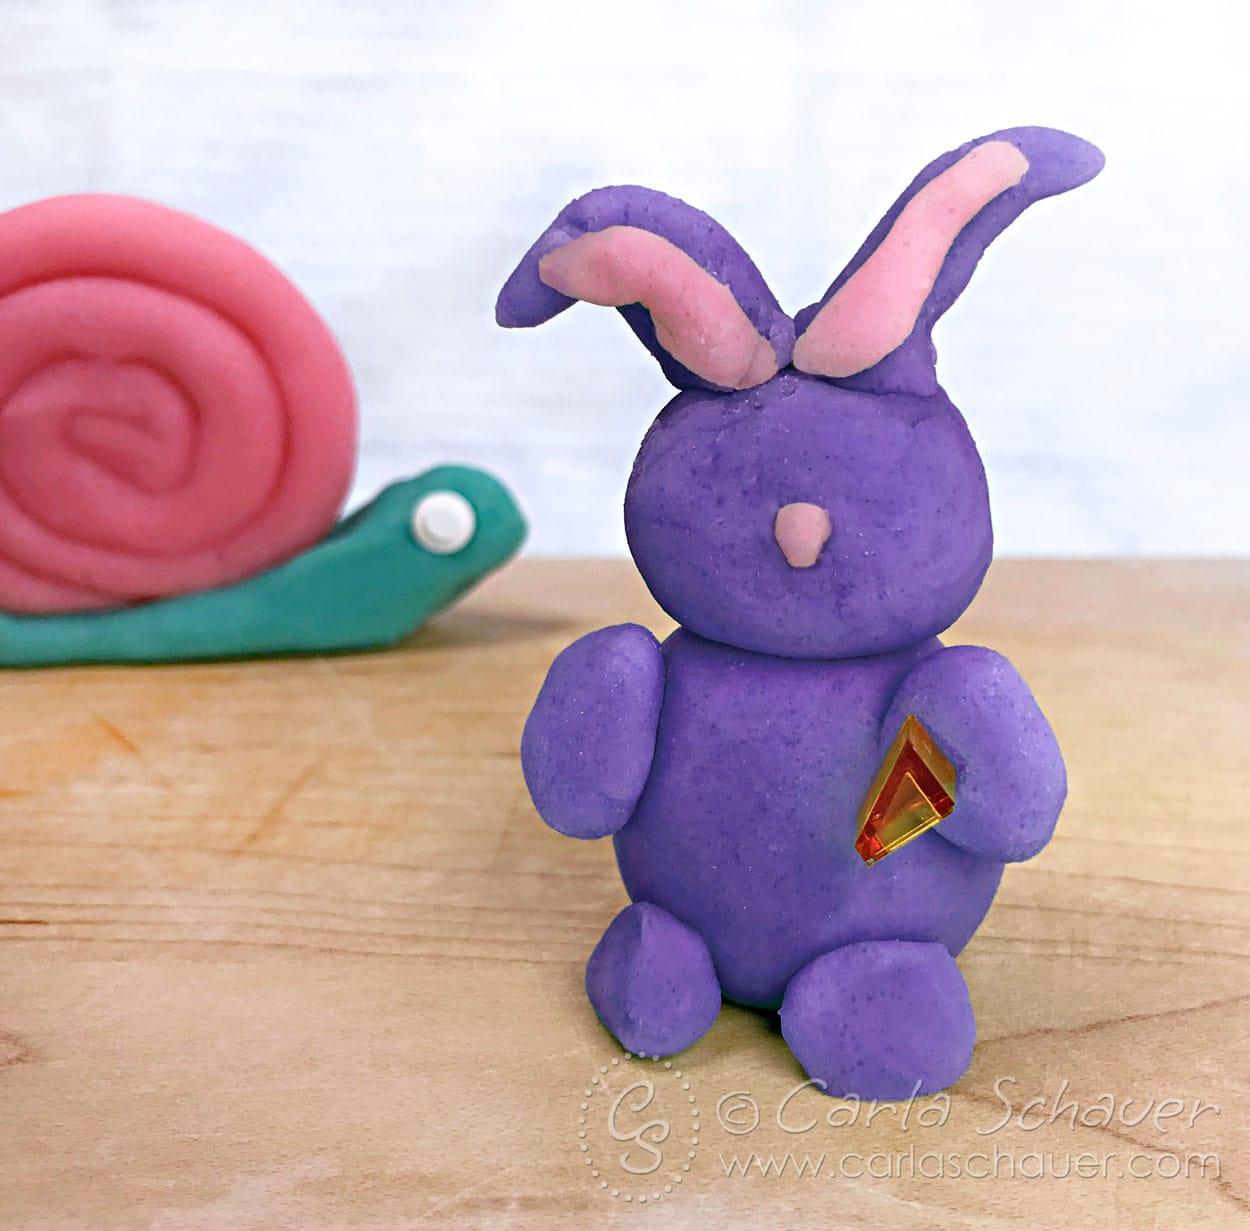 Rabbit and snail made from homemade playdough.